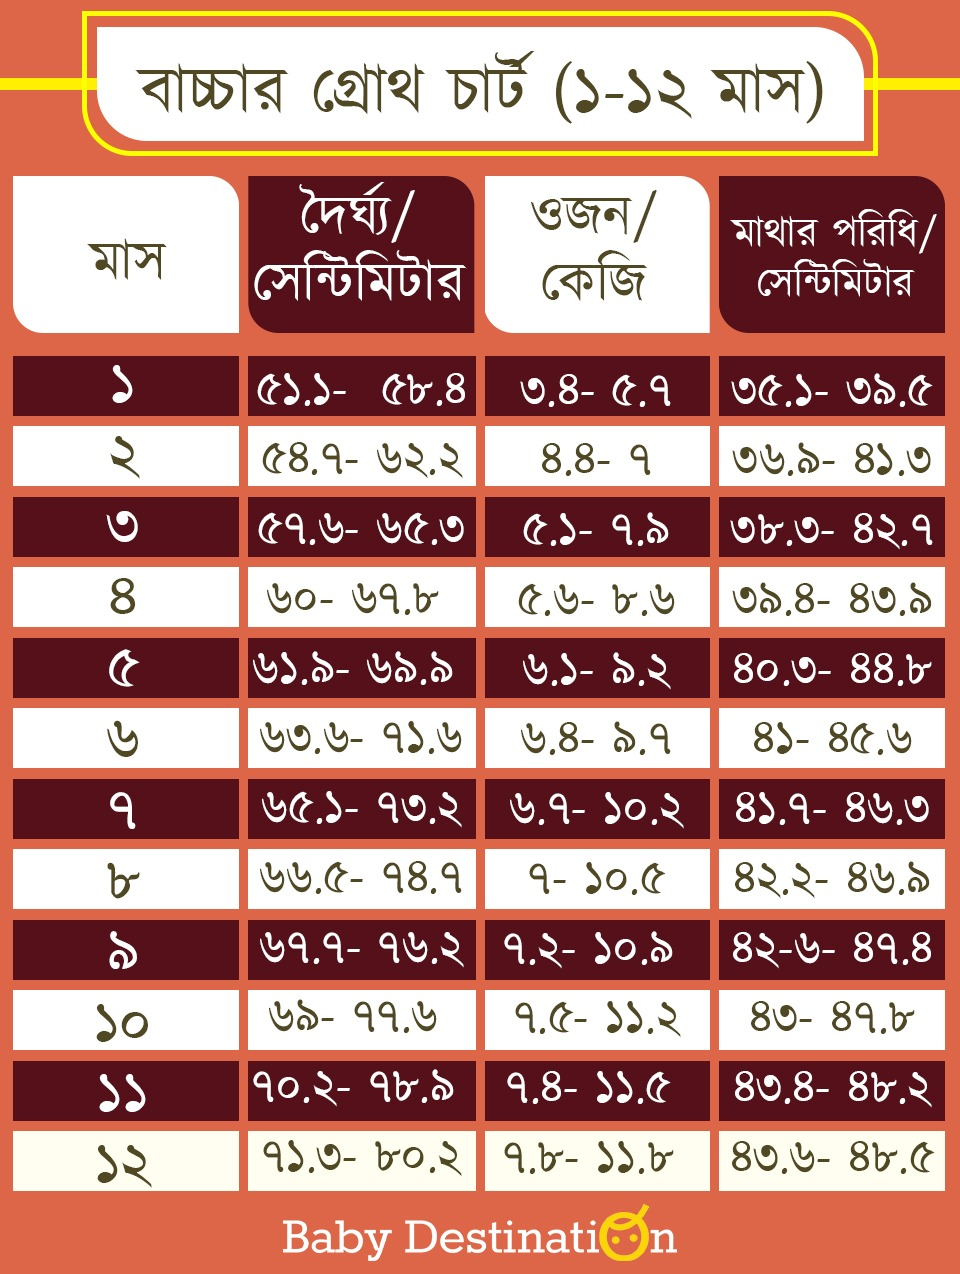 Baby growth chart in Bengali